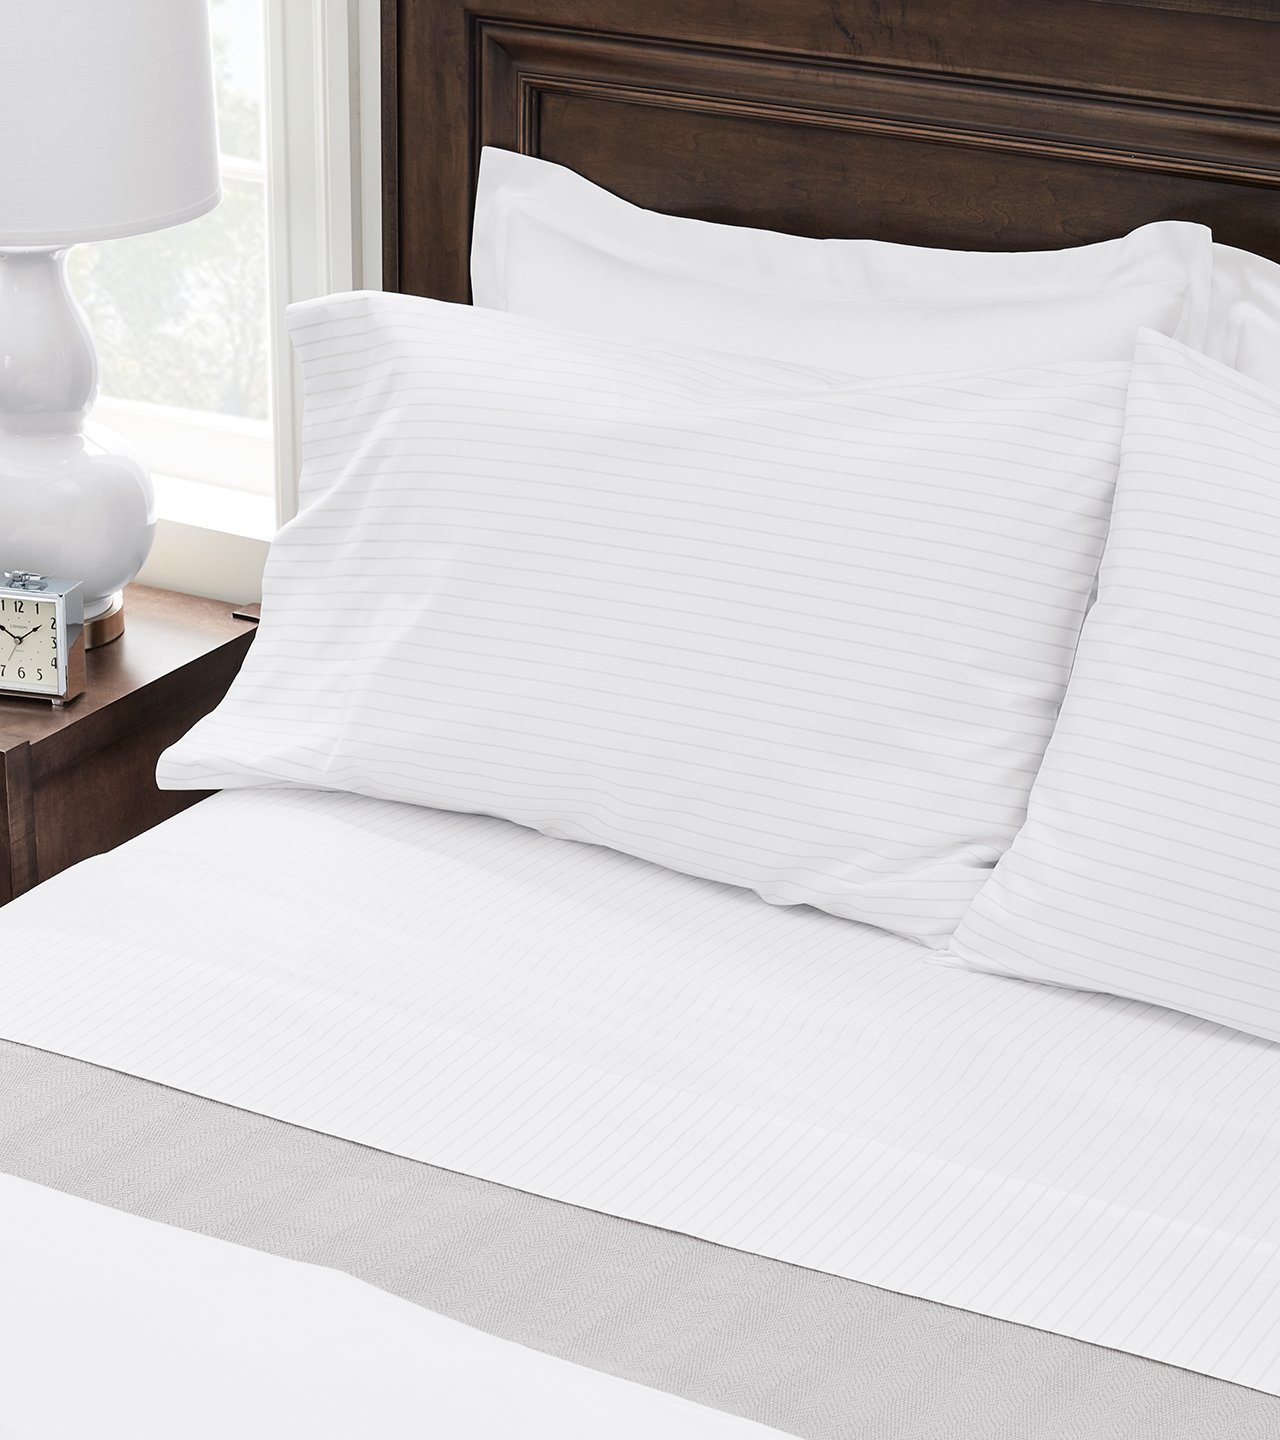 White Percale Sheet Set on bed